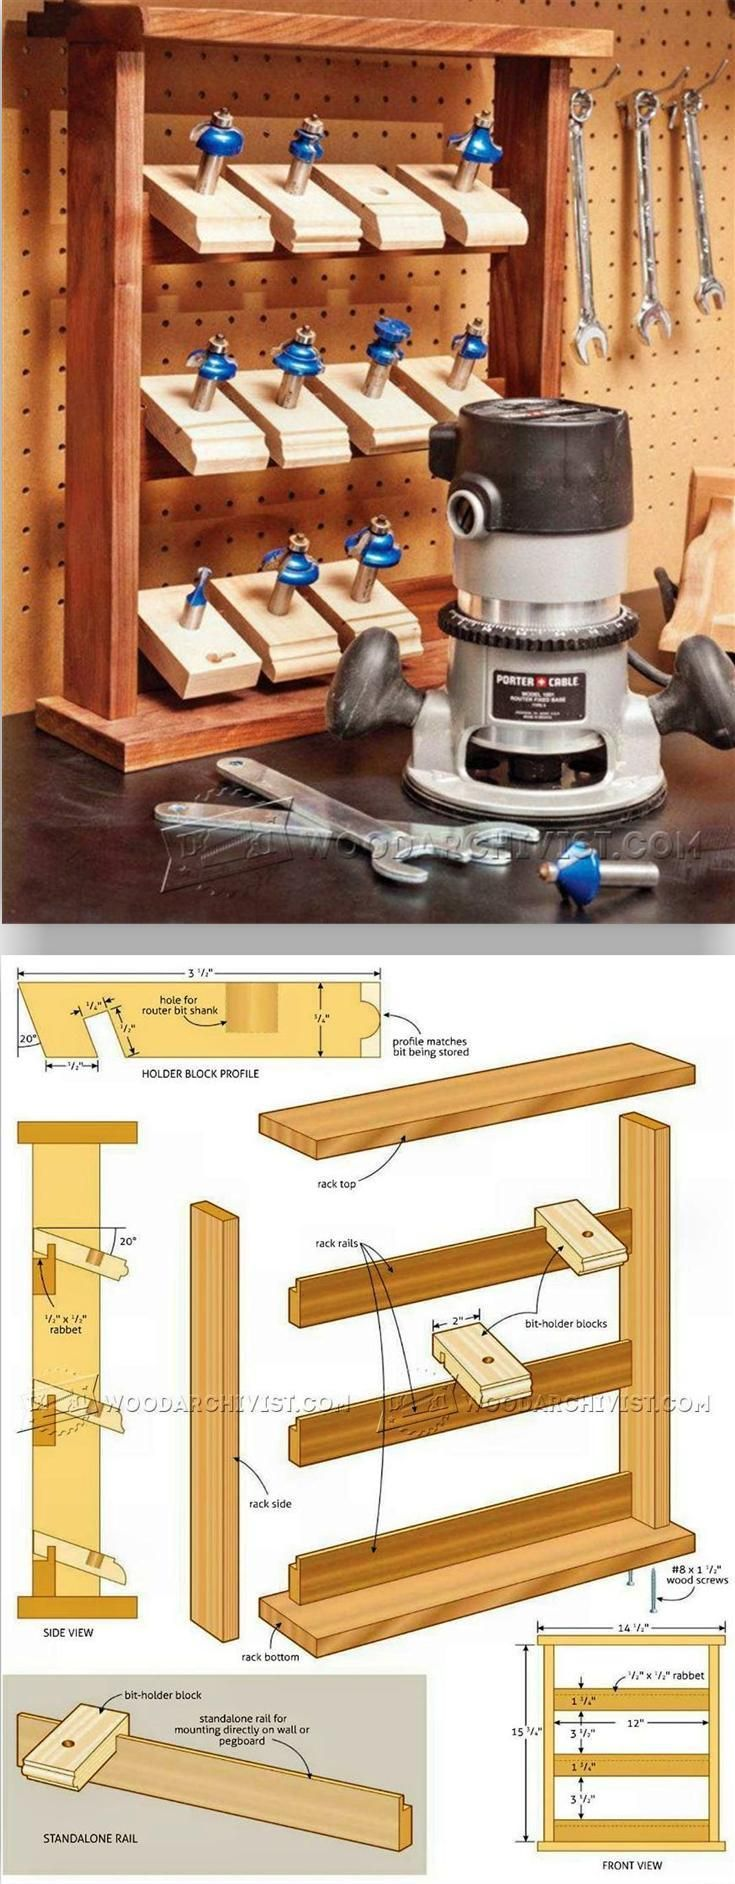 106 best router images on pinterest tools woodworking for Wood router ideas